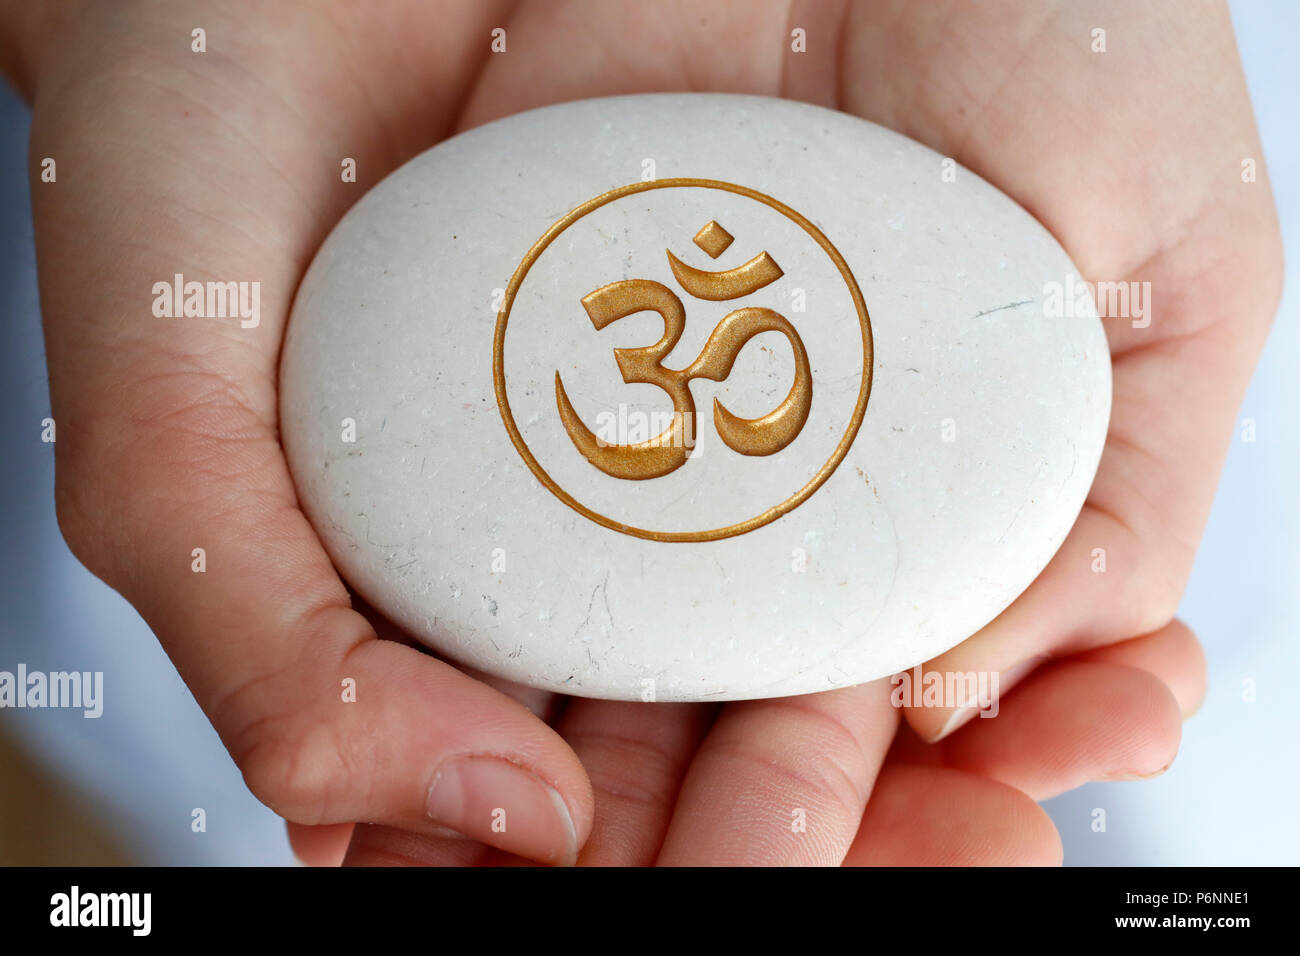 The Om or Aum symbol of Hinduism and Buddhism on a white stone. - Stock Image